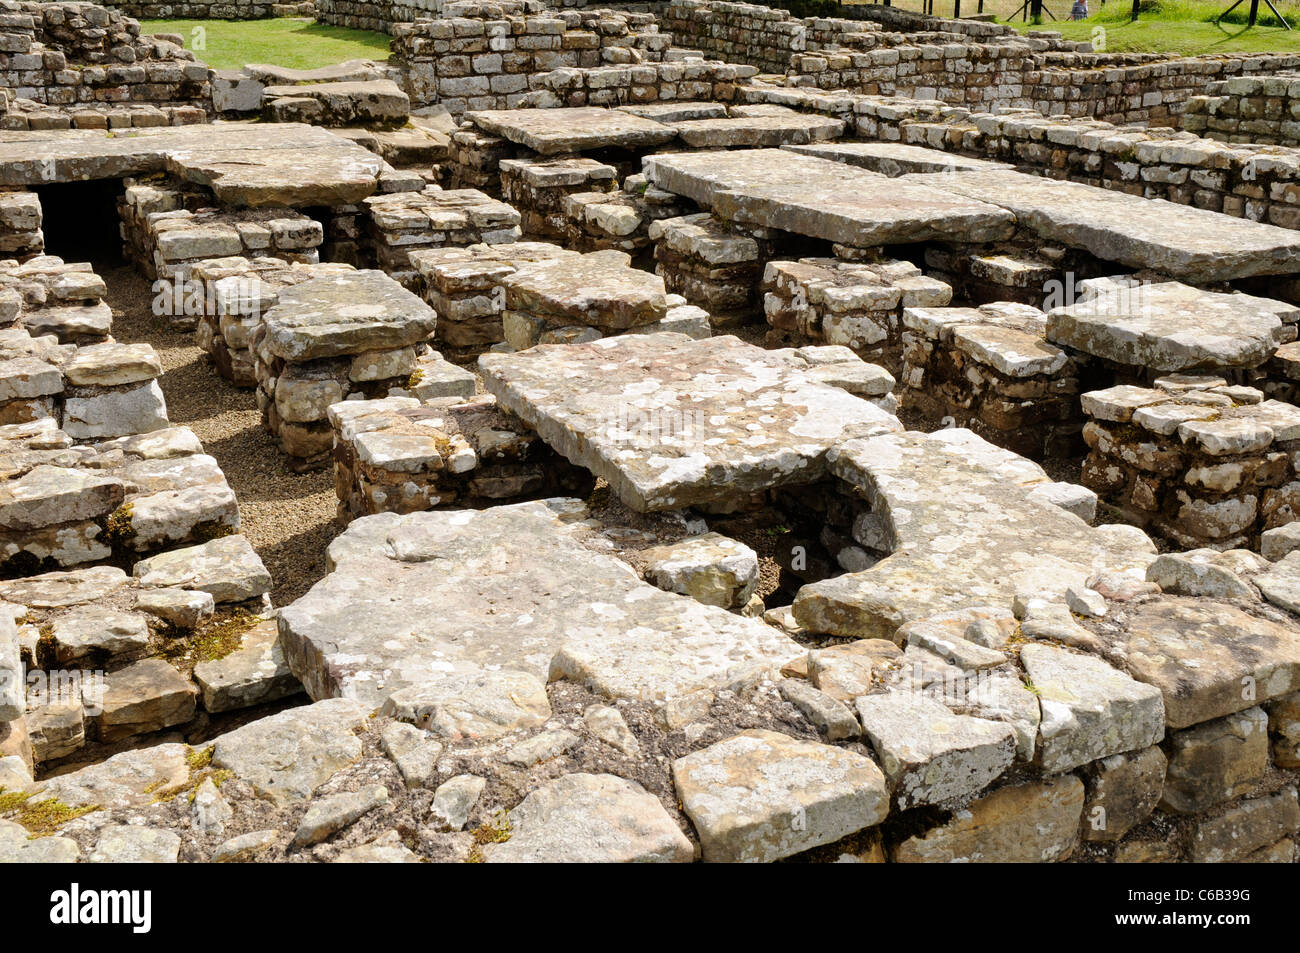 The praetorium or commanding officer's residence. Roman ruins at Chesters Fort, on Hadrian's Wall, England. - Stock Image